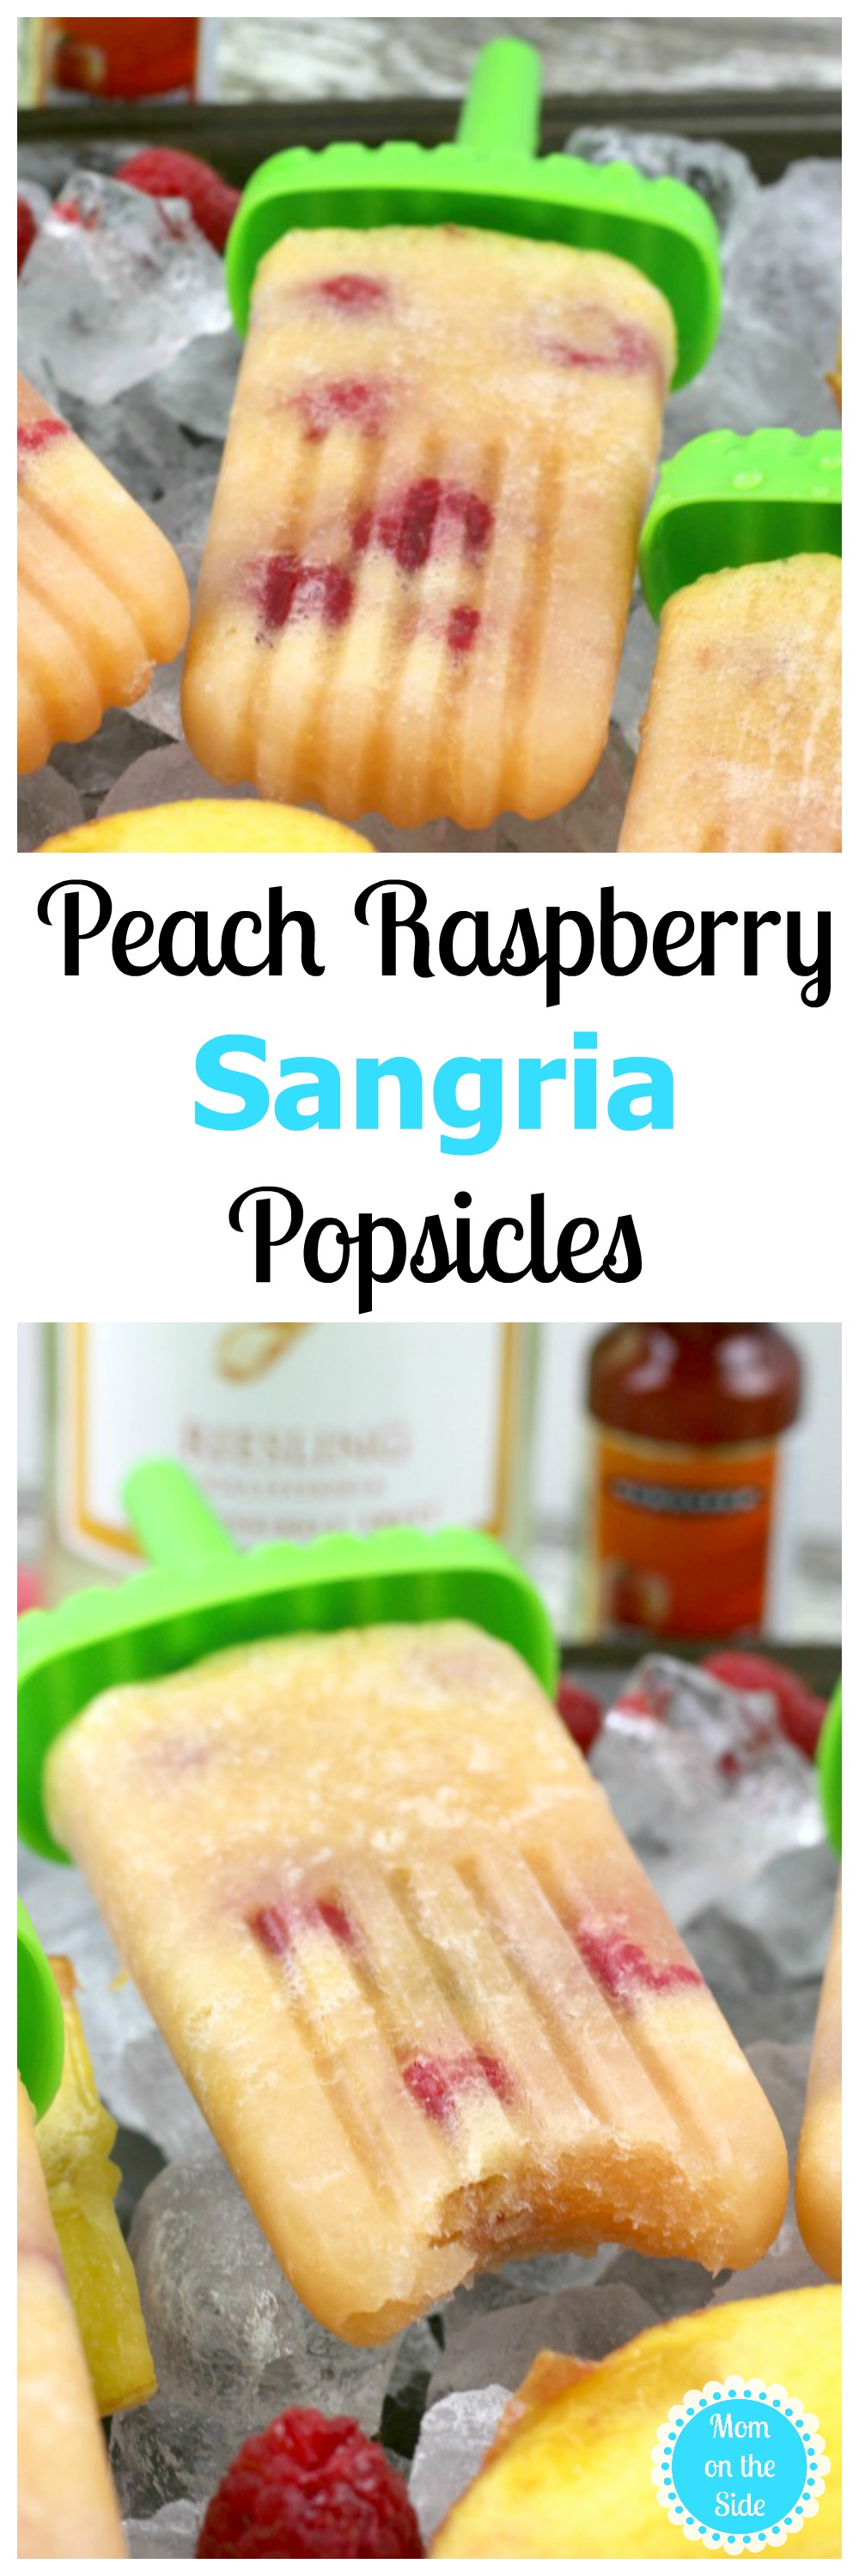 These Peach Raspberry Sangria Popsicles are going to knock your socks off on the way to flavor town. A boozy dessert for adults and super simple to make for those summer parties!